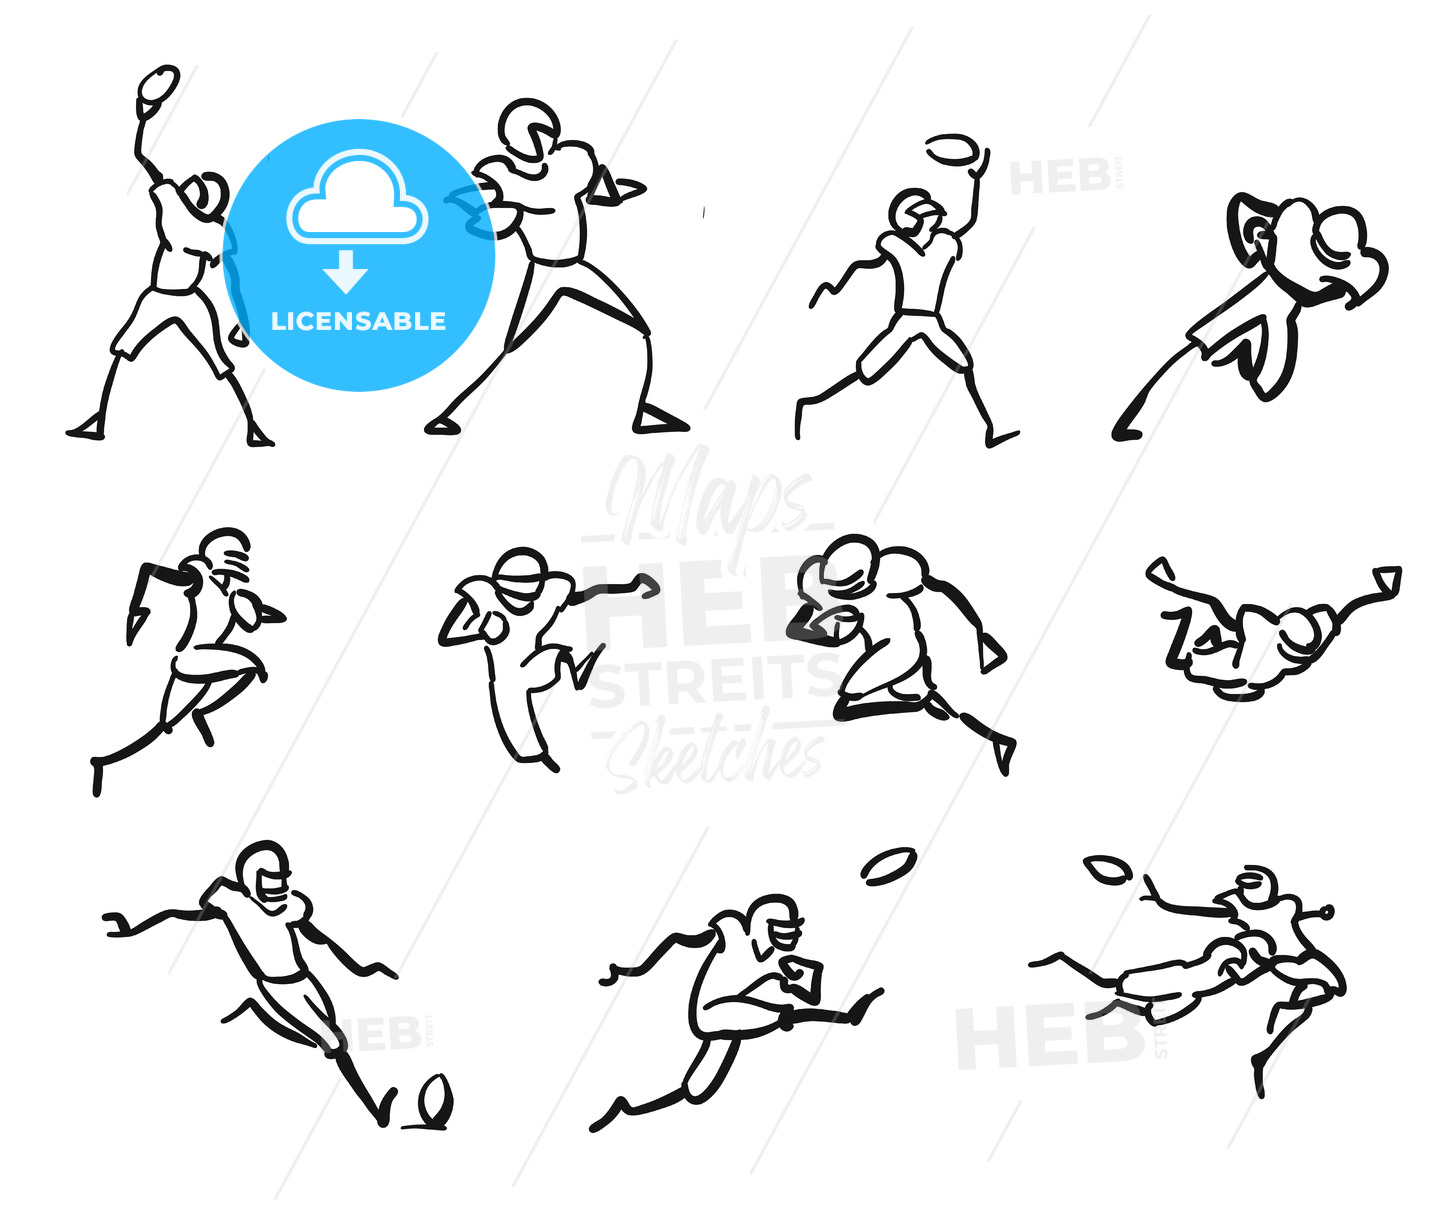 American Football Player Motion Sketch Studies - Hebstreits